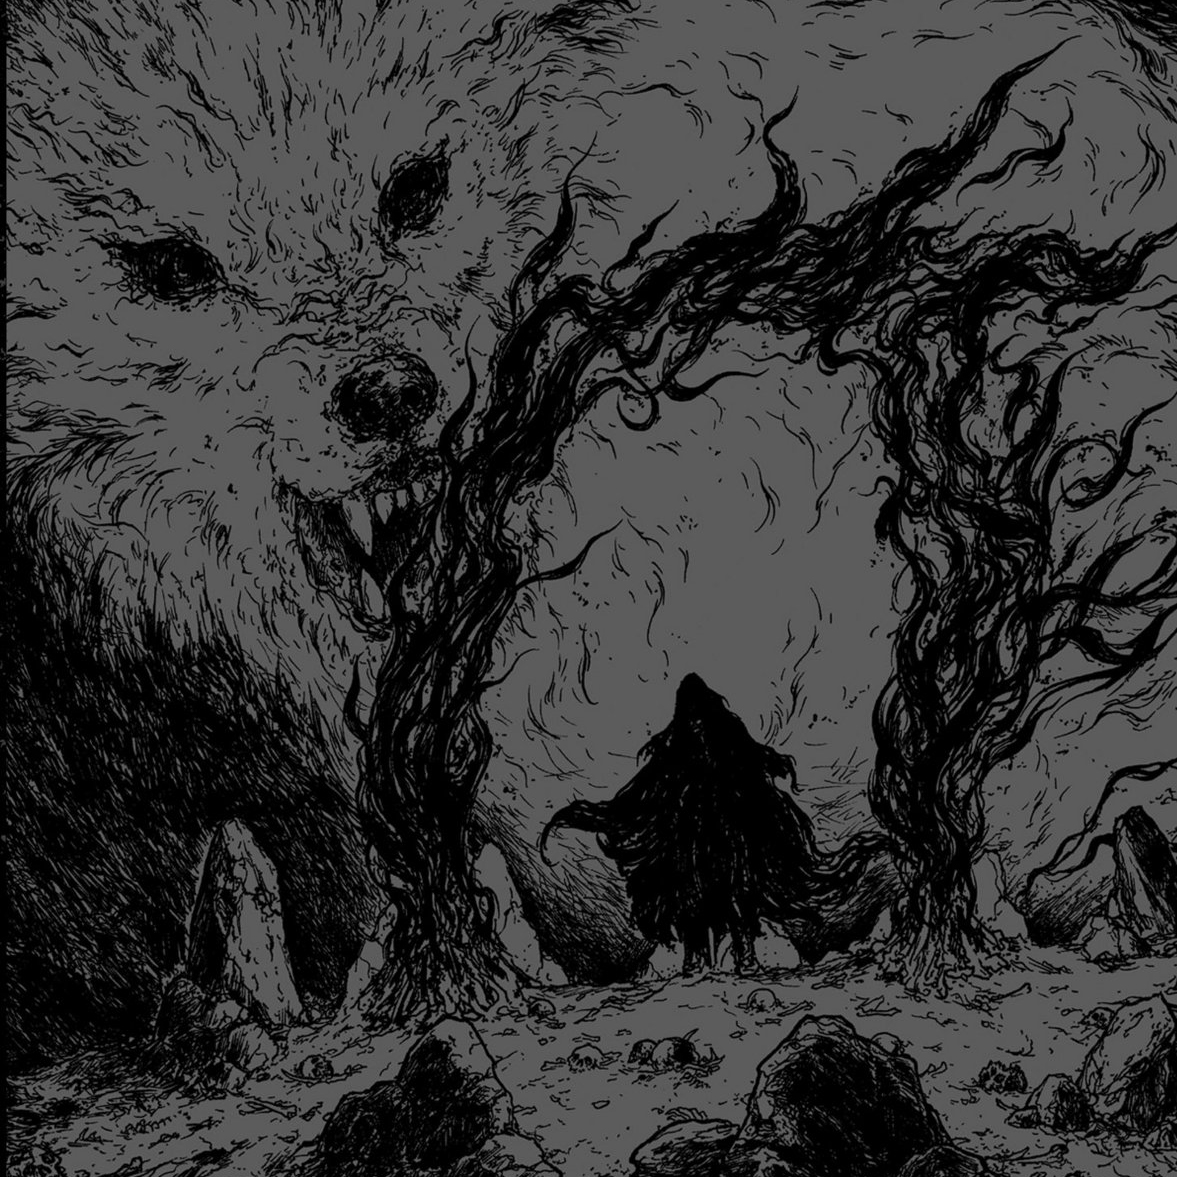 BLOOD STRONGHOLD - Spectres of Bloodshed